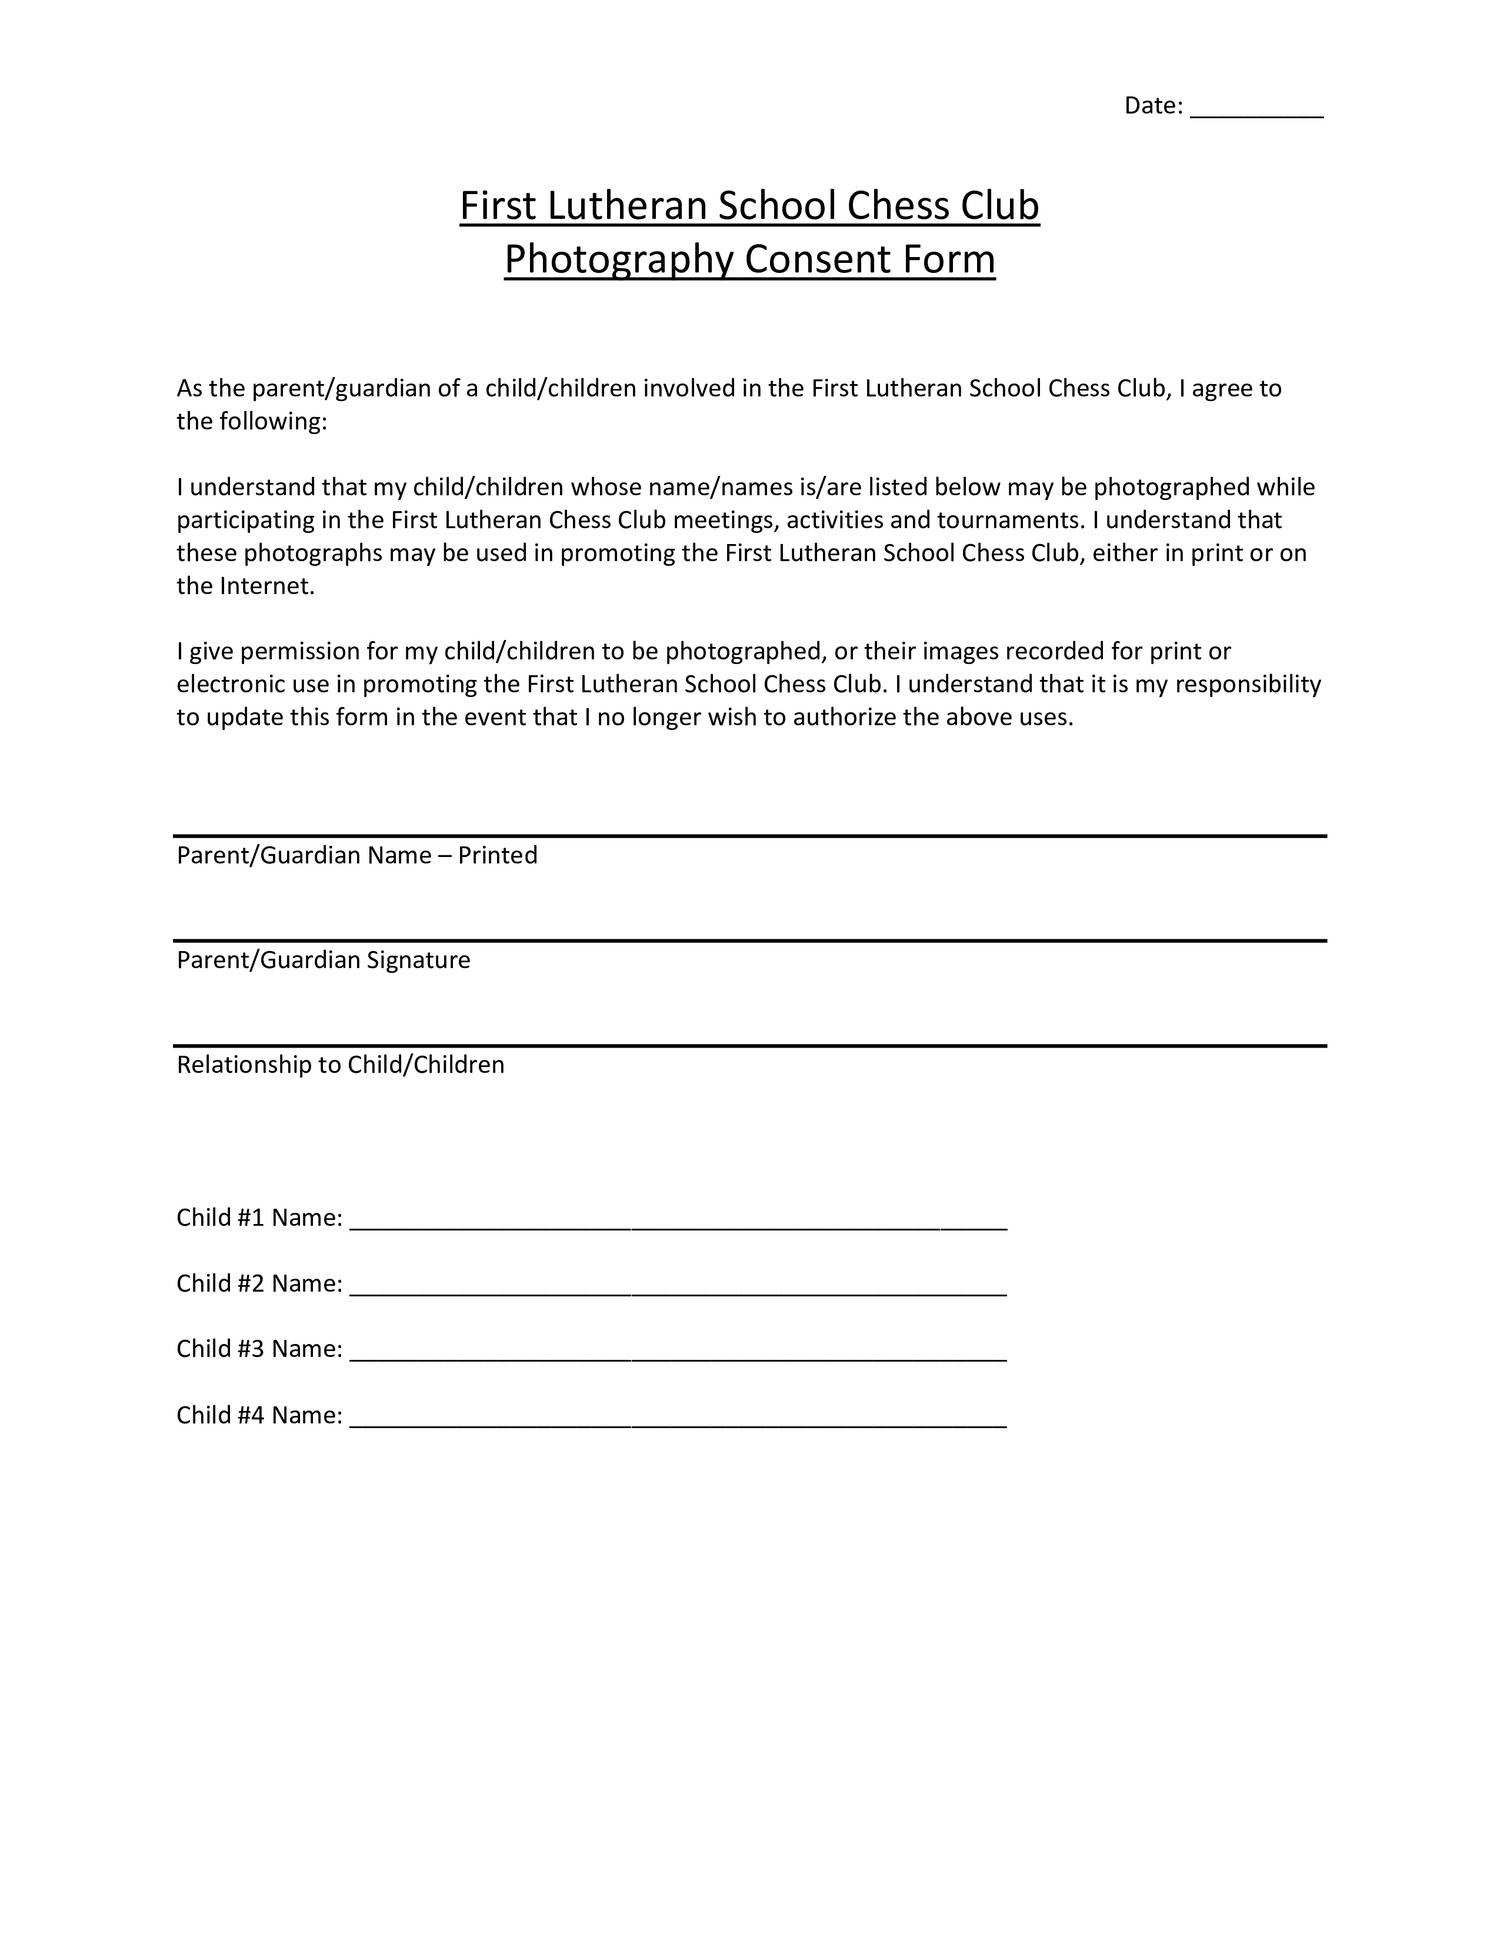 Photography Consent Formdocx DocDroid – Photography Consent Form